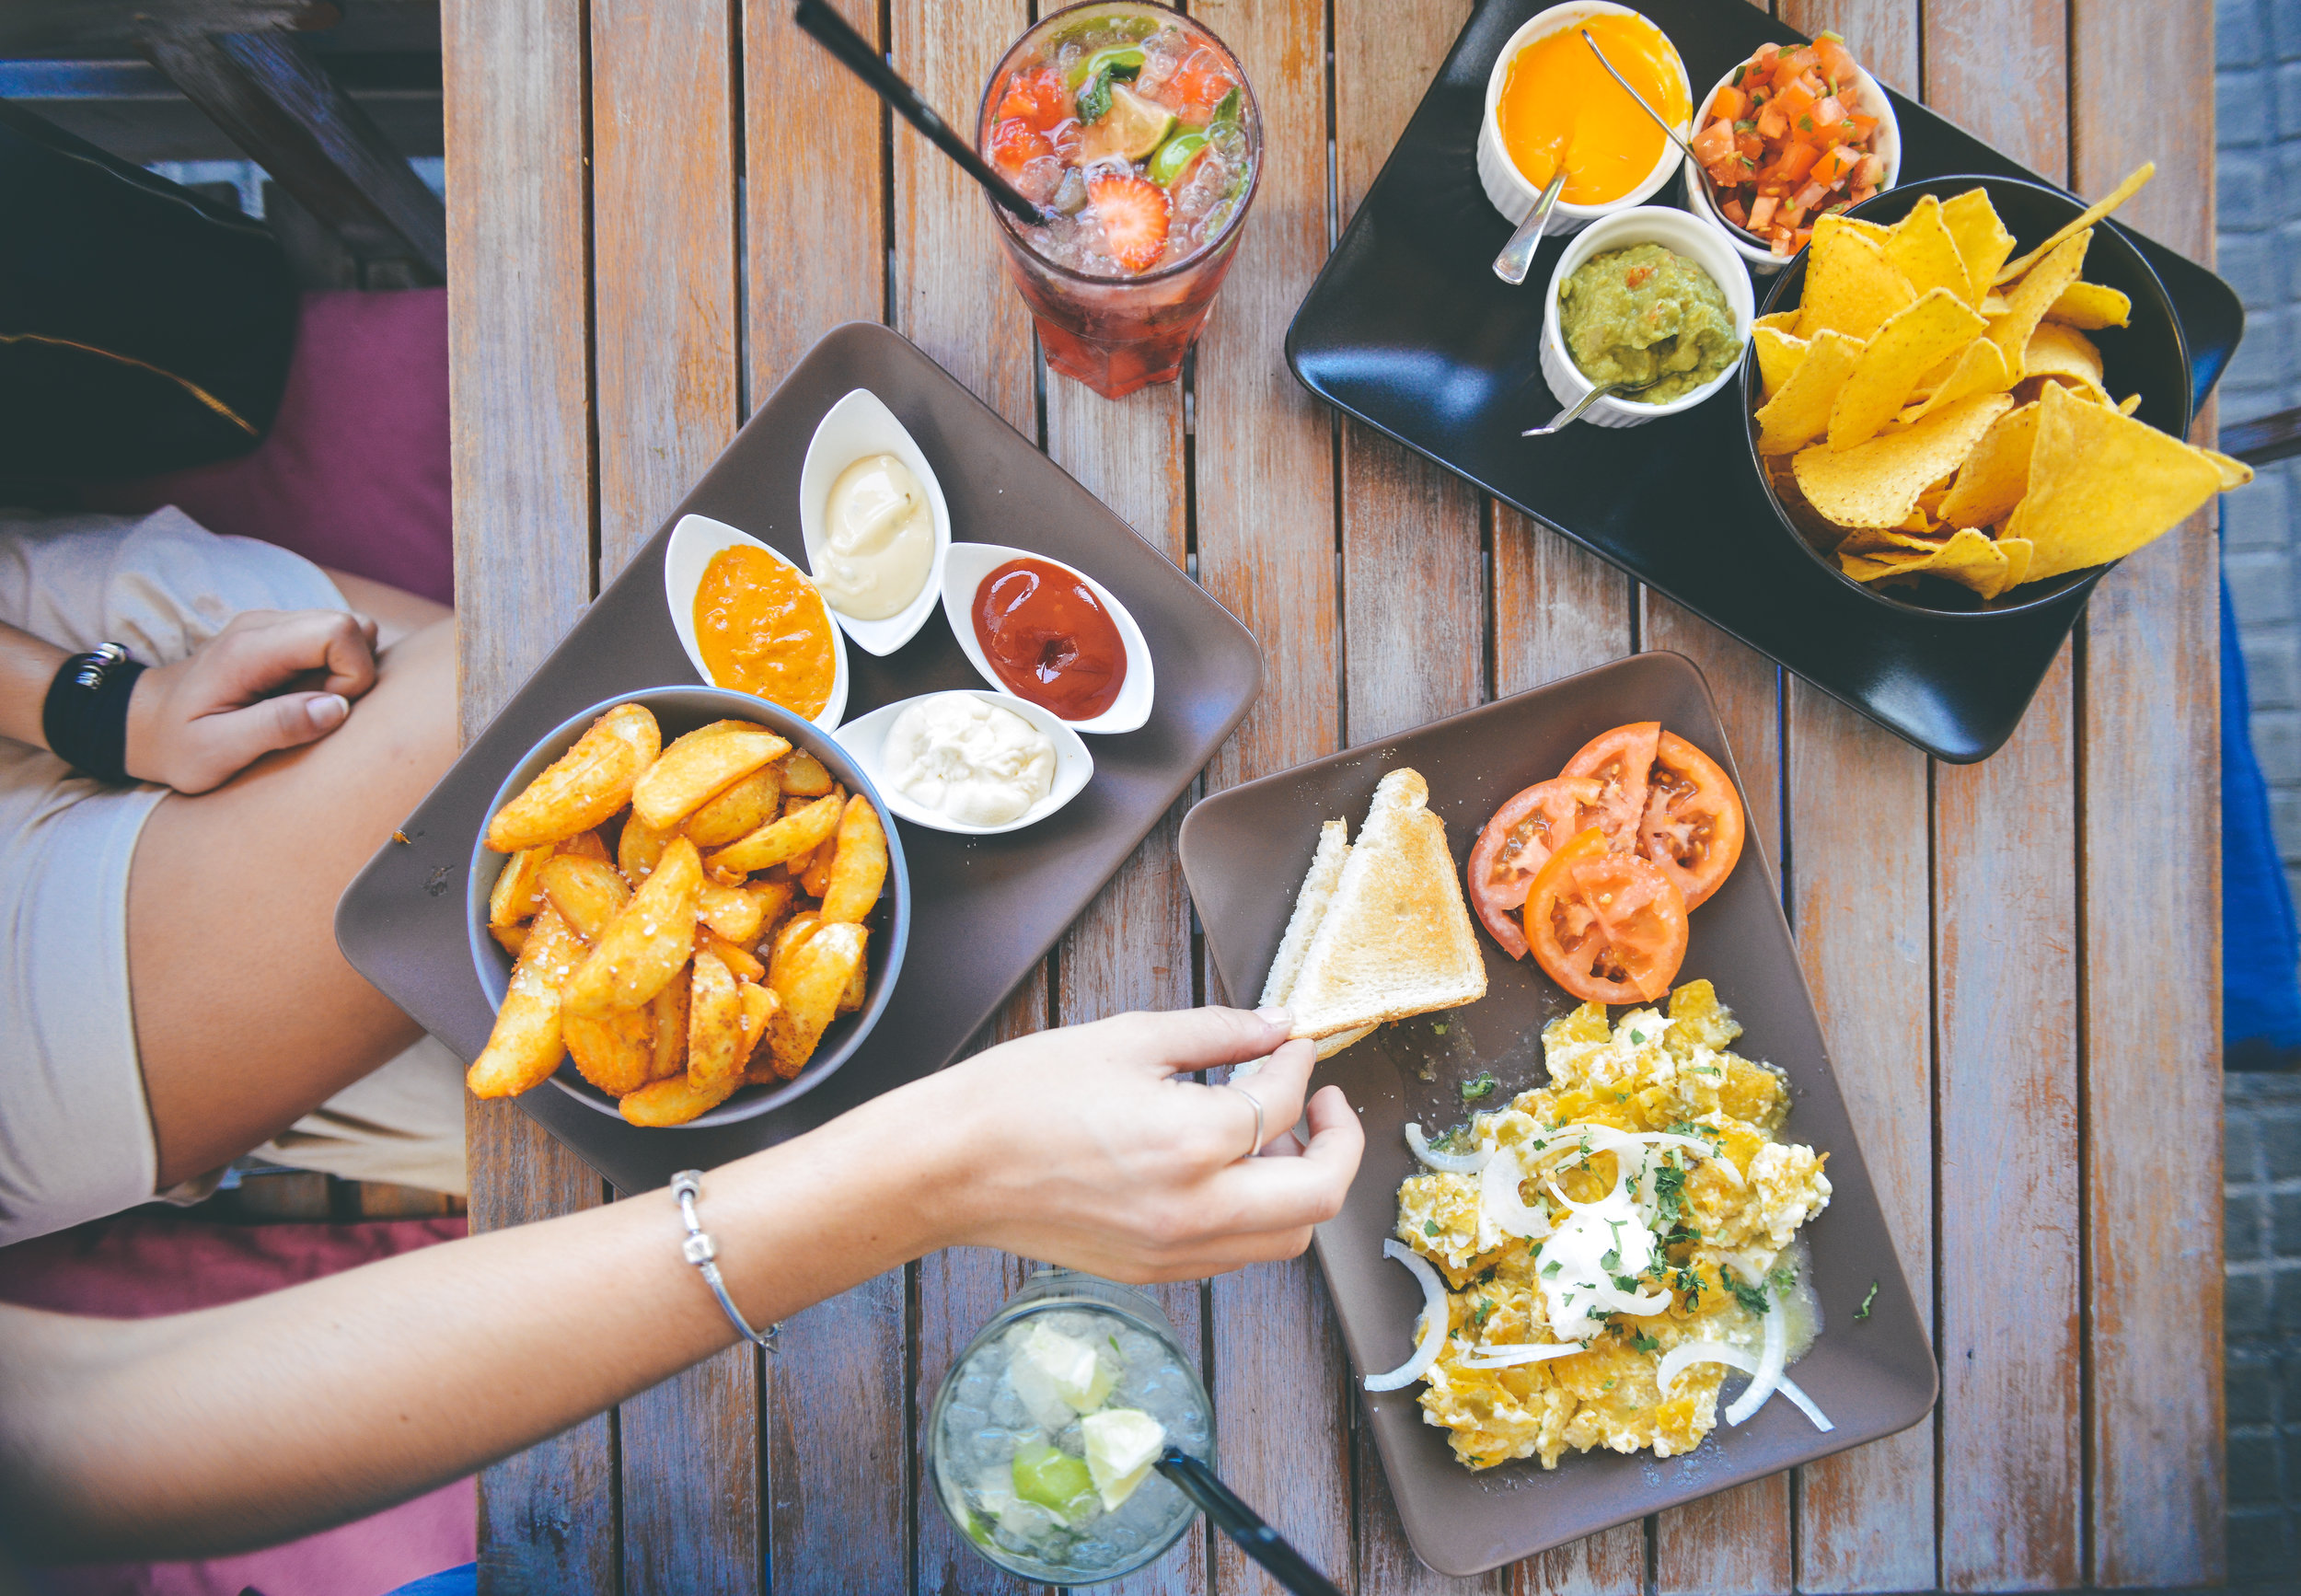 Try a variety of food at First Fridays